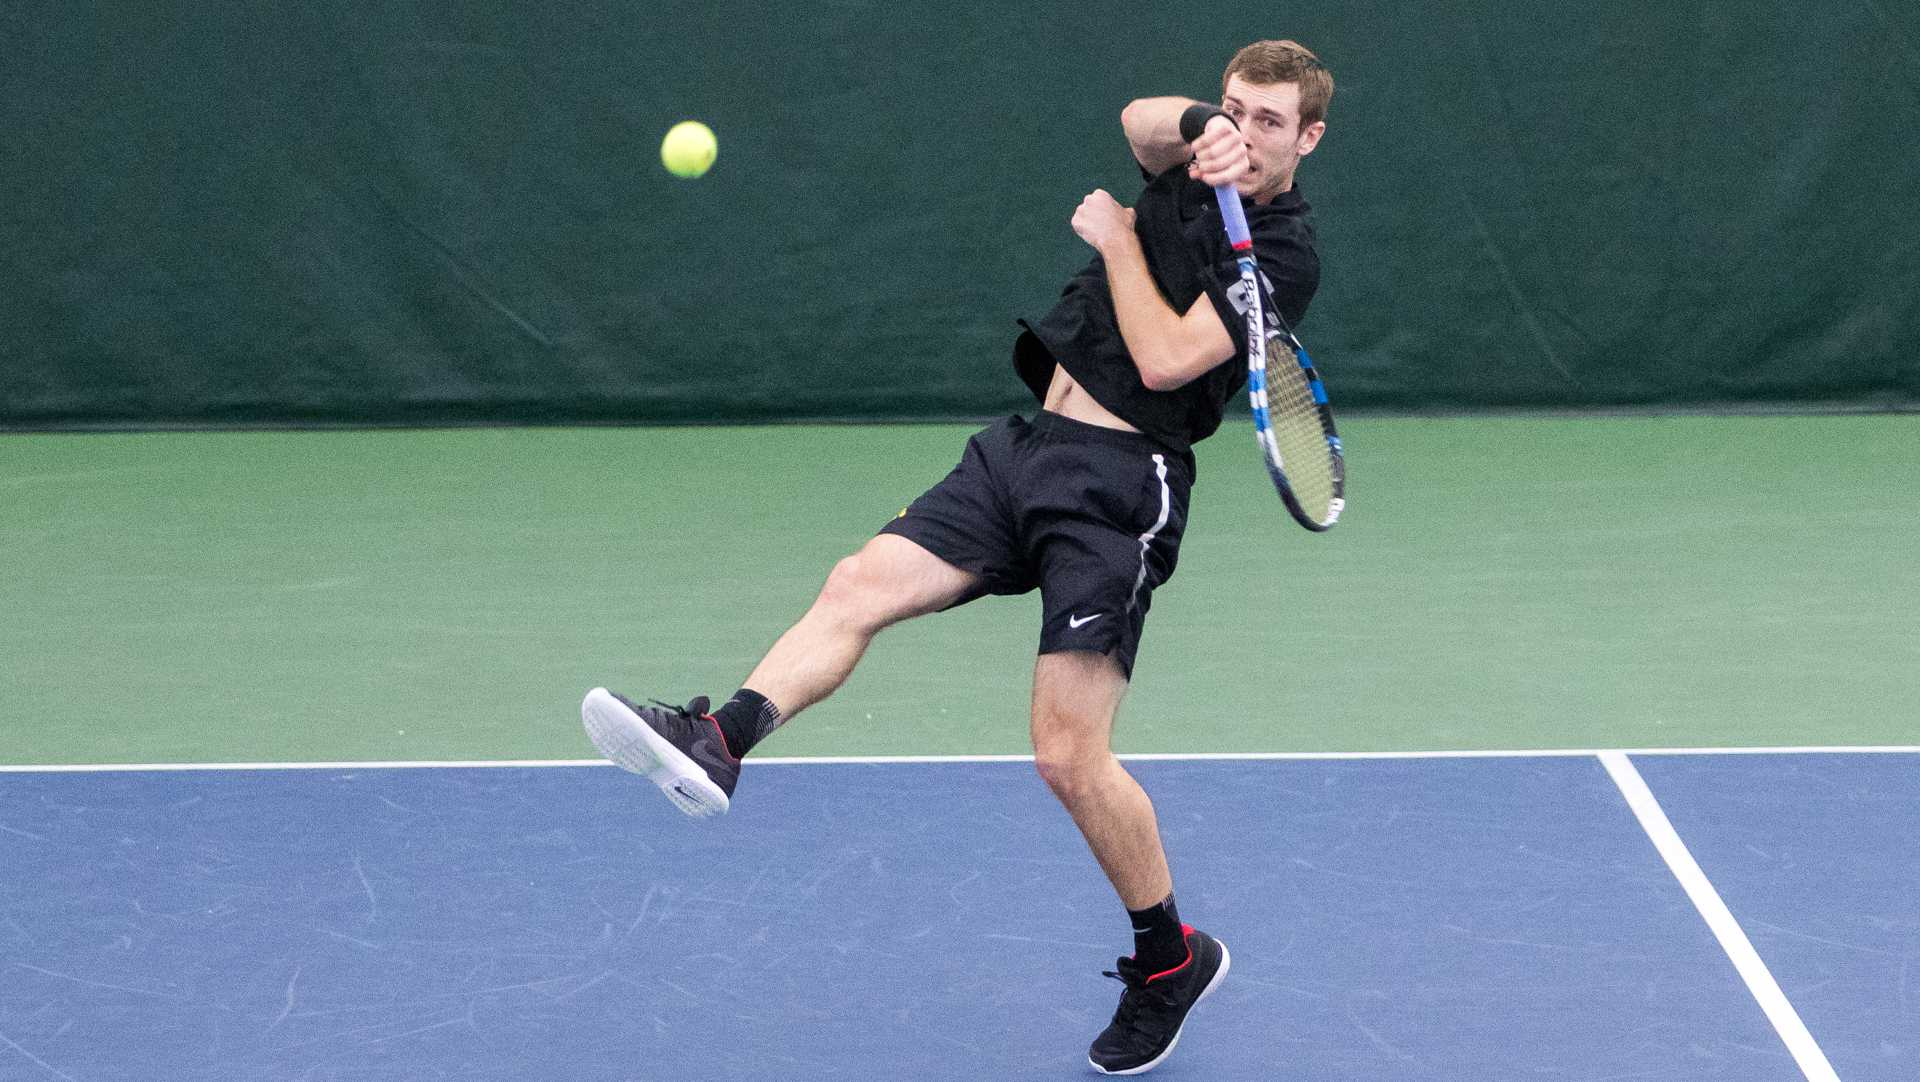 Iowa tennis player Jake Jacoby volleys the ball during a doubles match against Cornell University on Friday, Mar. 2, 2017. Jacoby lost his match 5-7 and the Big Red defeated the Hawkeyes 4-3. (David Harmantas/The Daily Iowan)